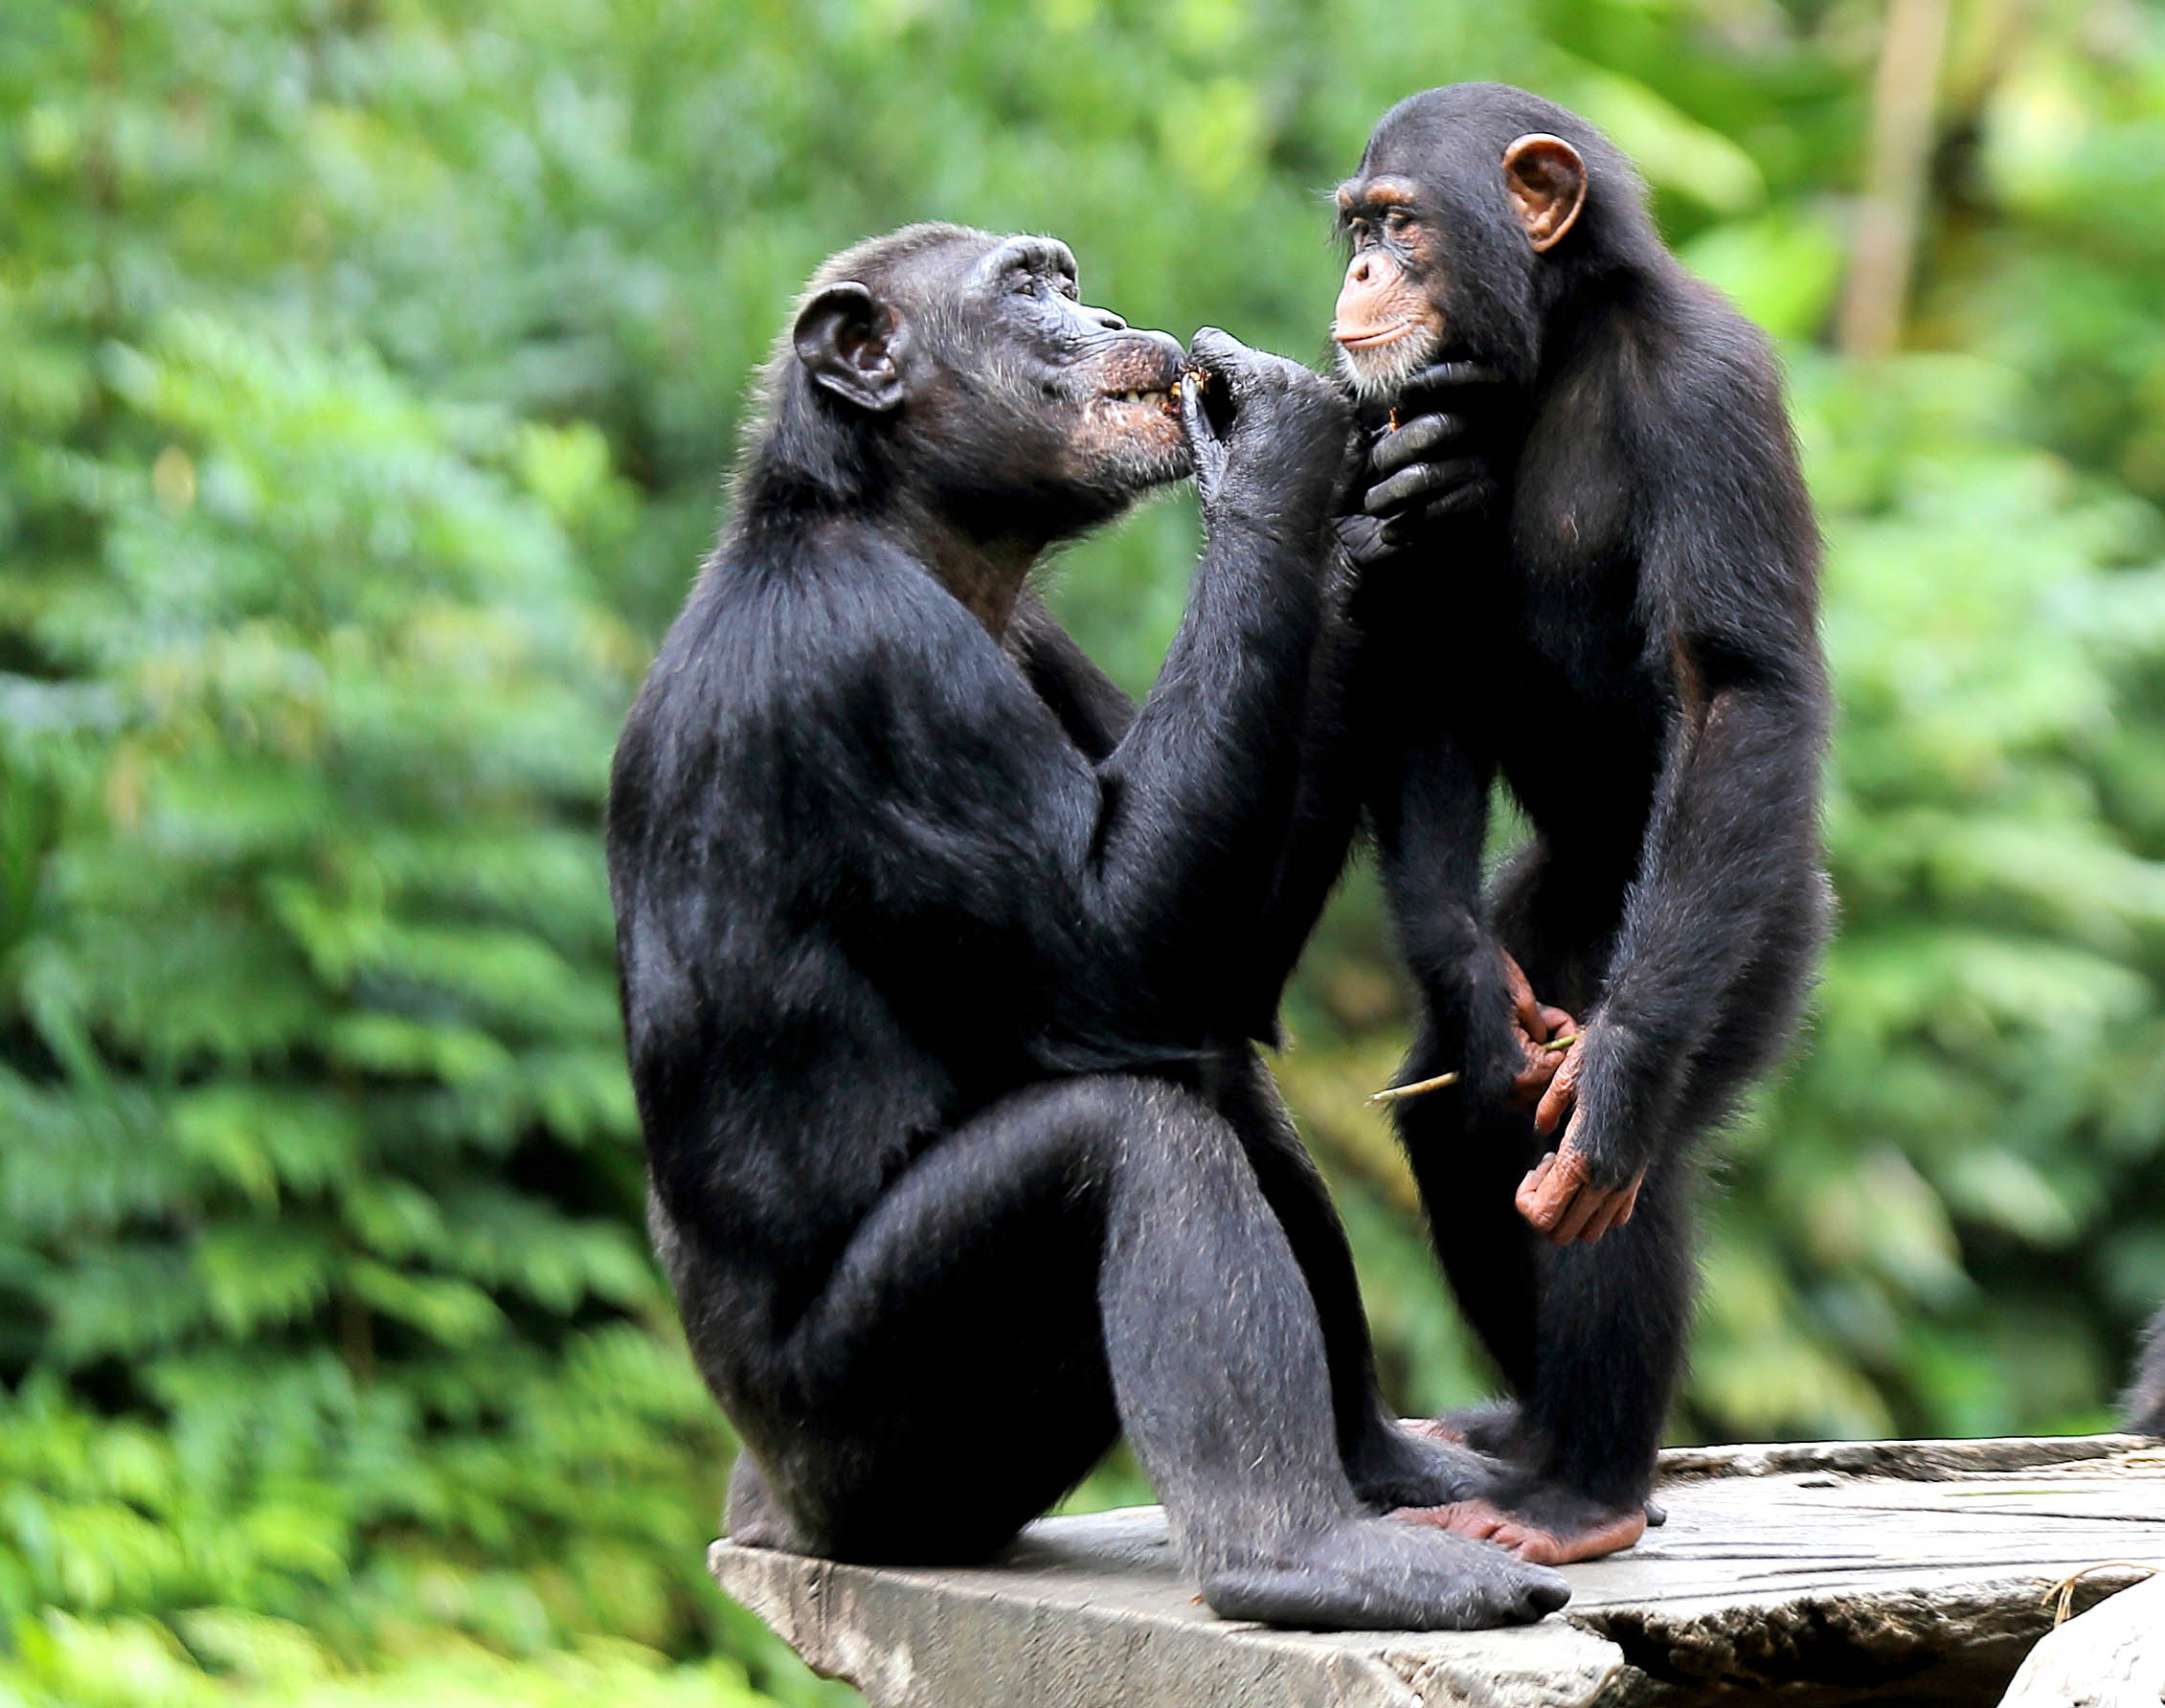 Chimpanzees learn grooming from their mothers